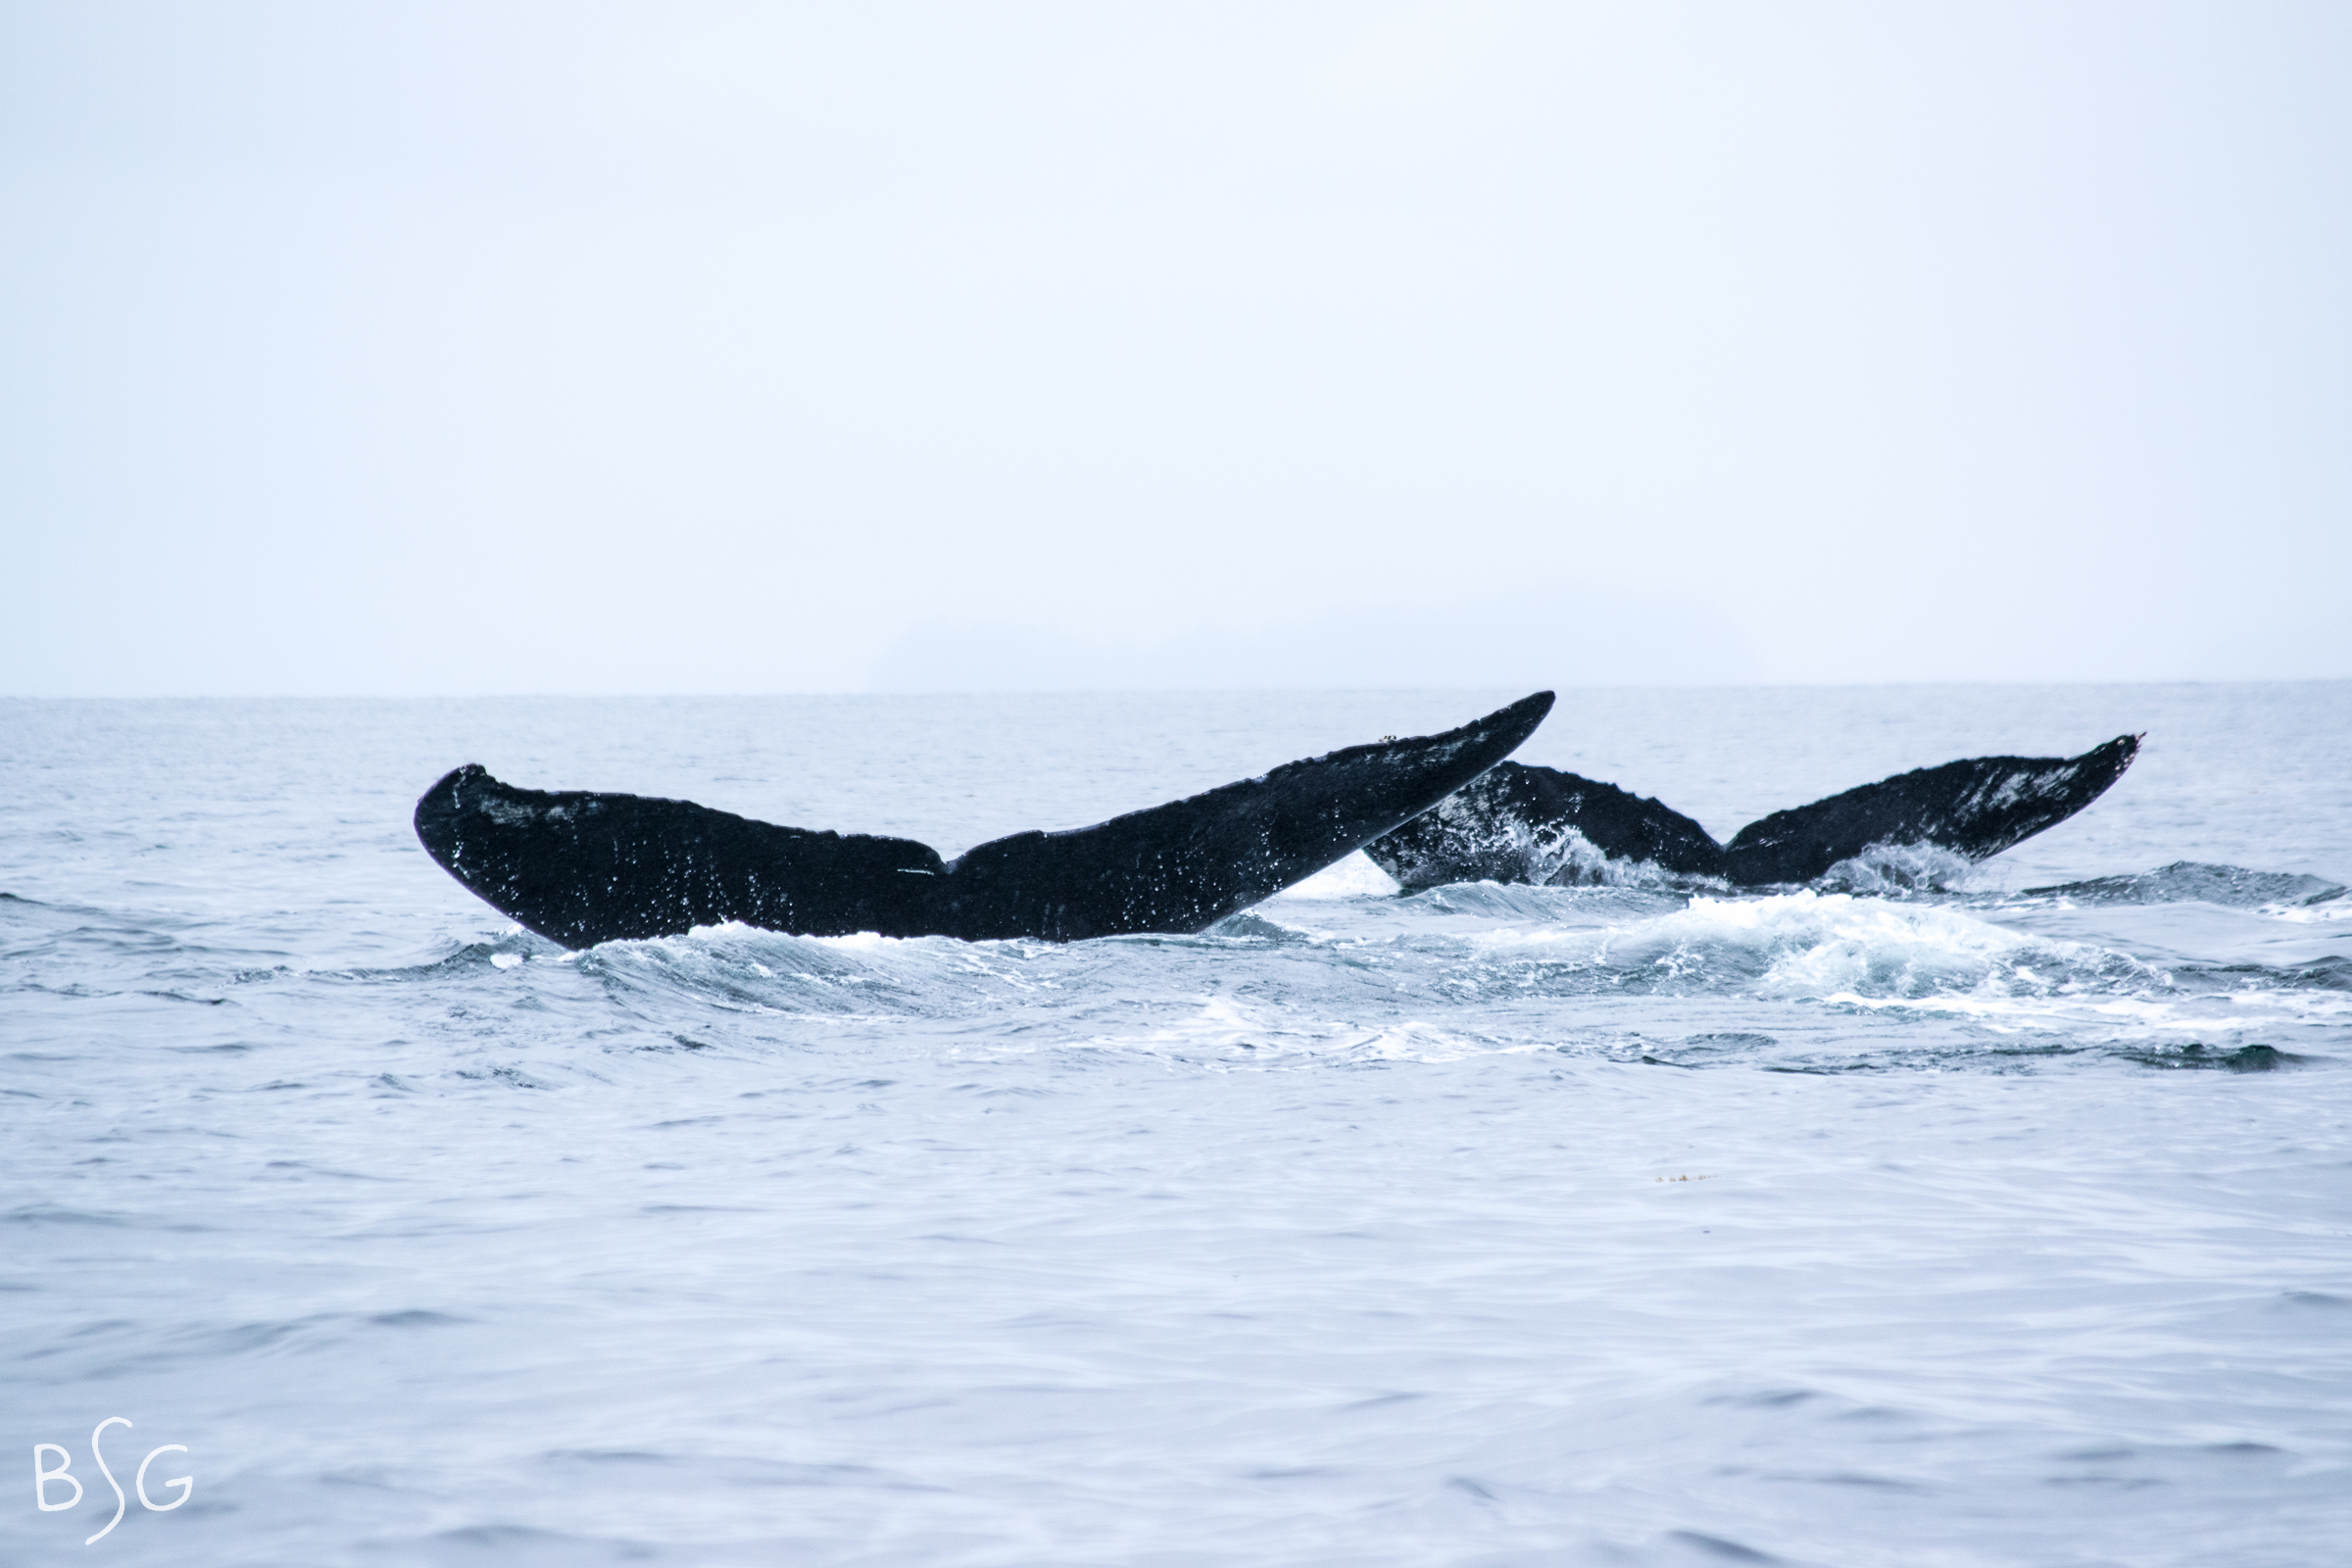 Nine humpbacks dive together, two flukes pictured above.